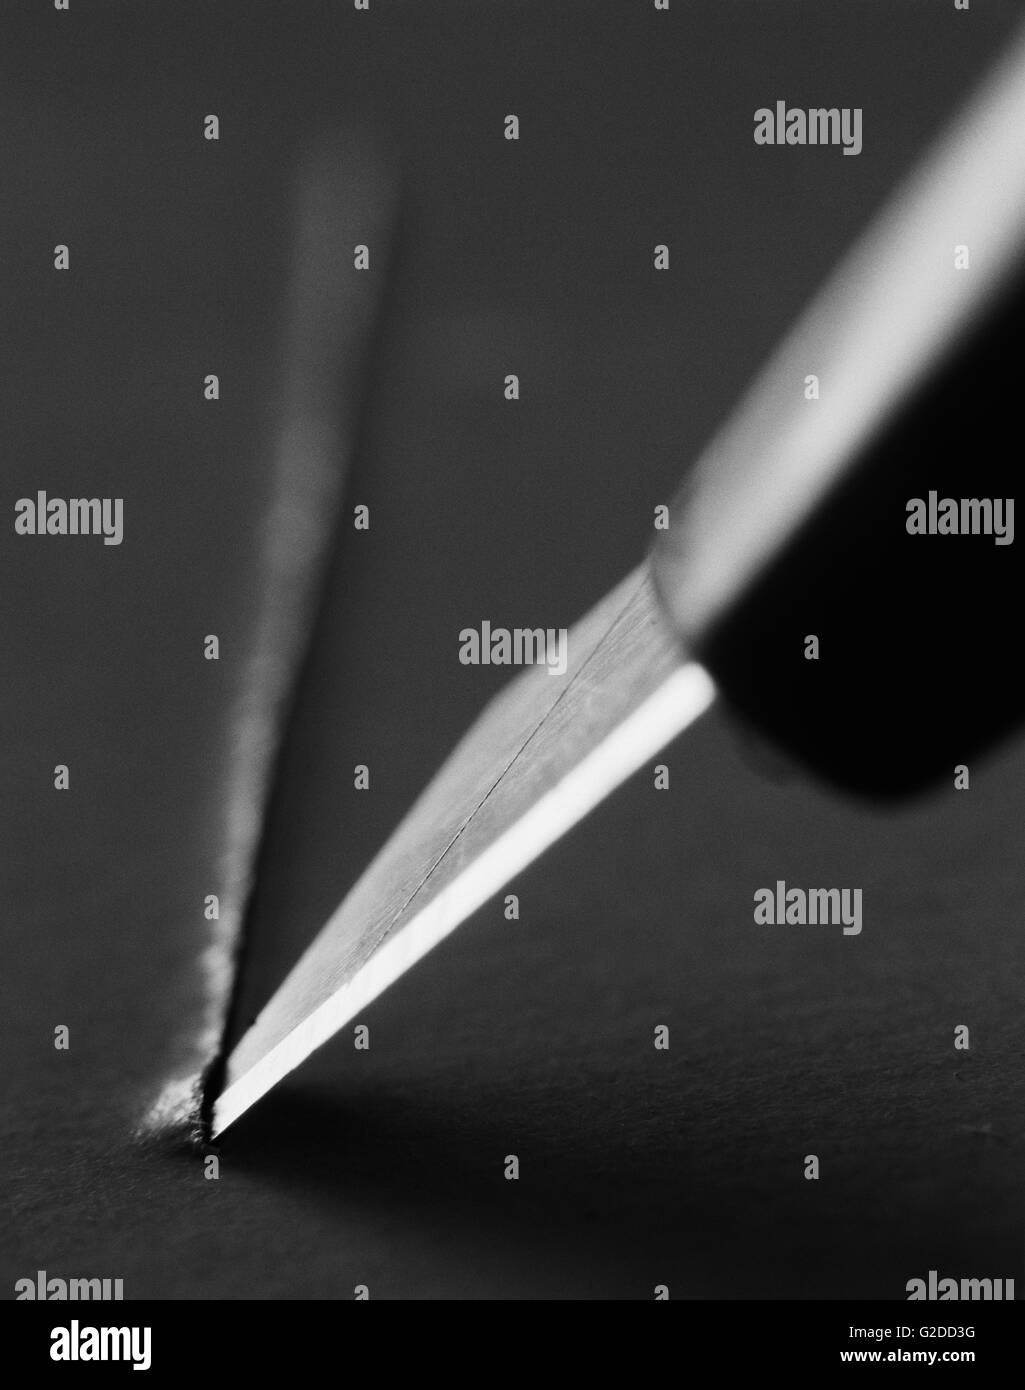 Sharp Knife and Paper - Stock Image